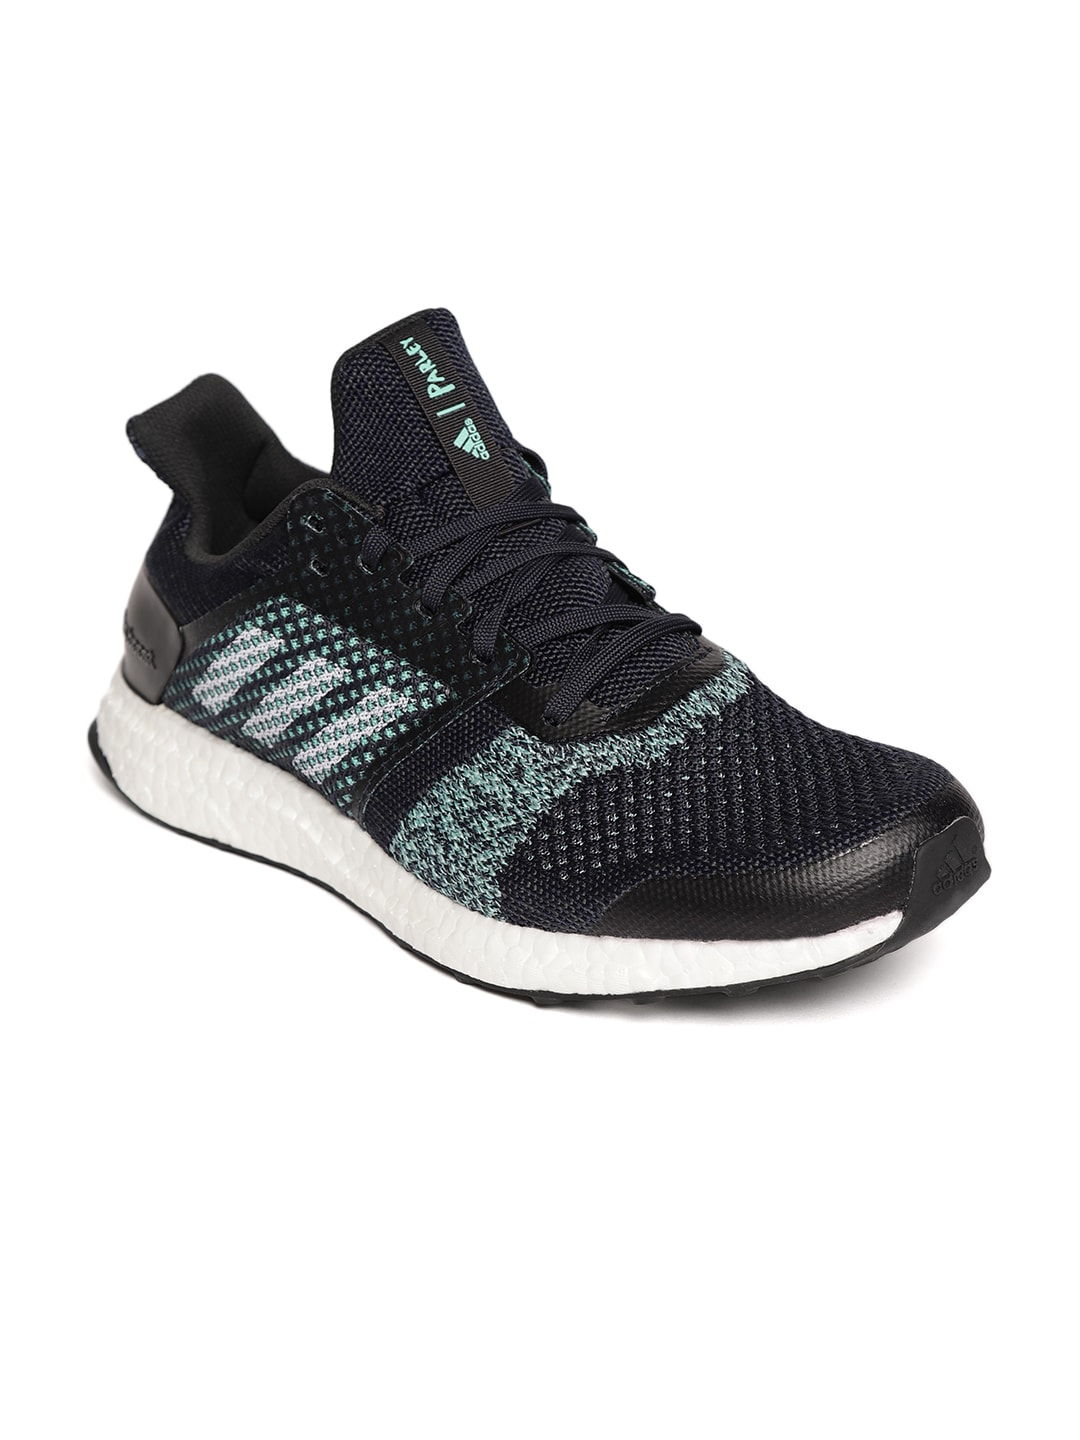 990af9c1ff1 Adidas Running Shoes - Buy Adidas Running Shoes Online